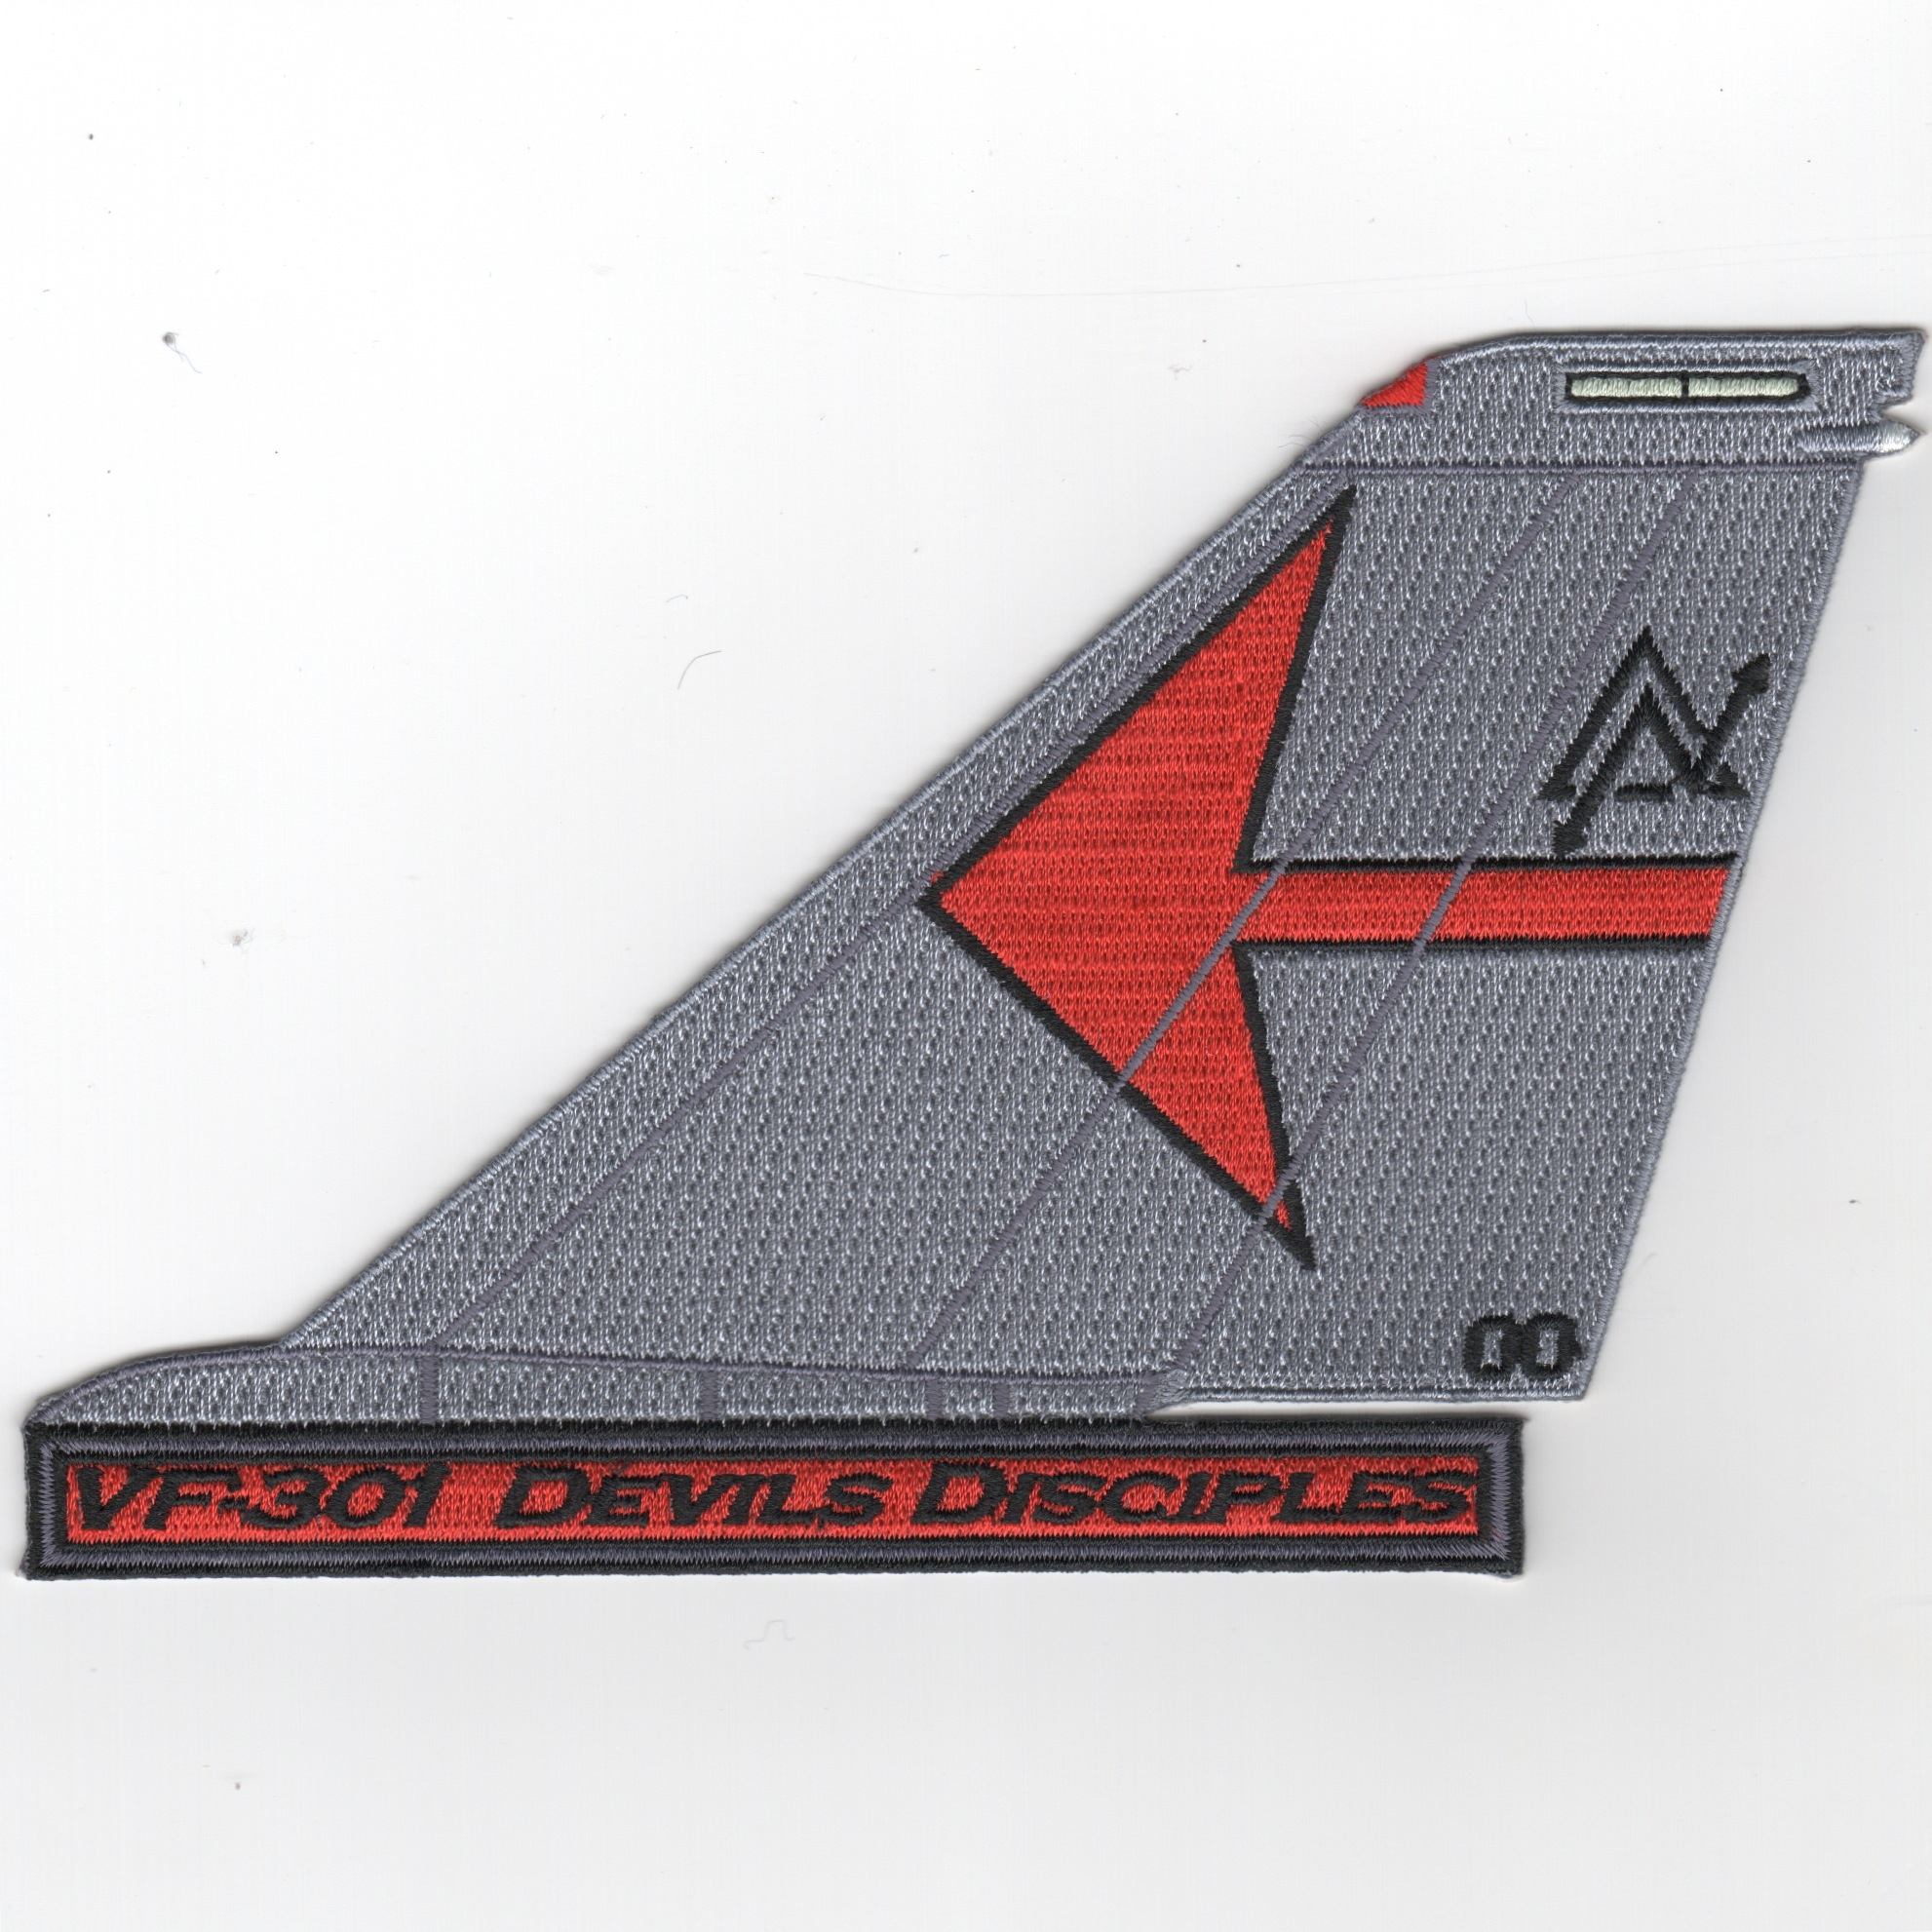 VF-301 F-14 Tailfin (Text)